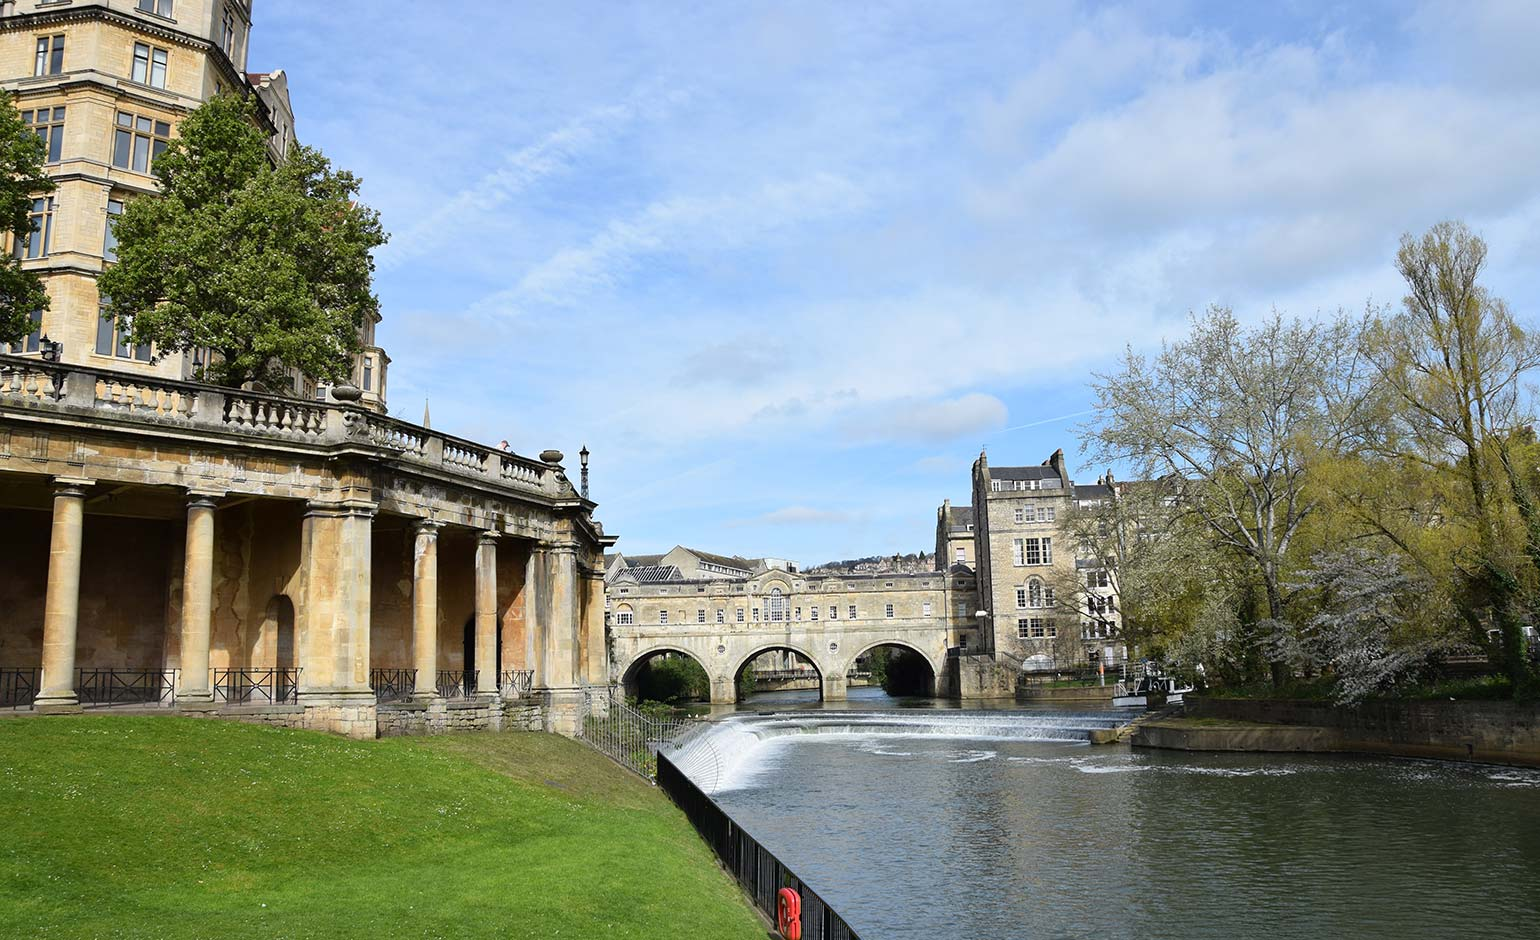 Council considering pleasure boat passenger service from Parade Gardens